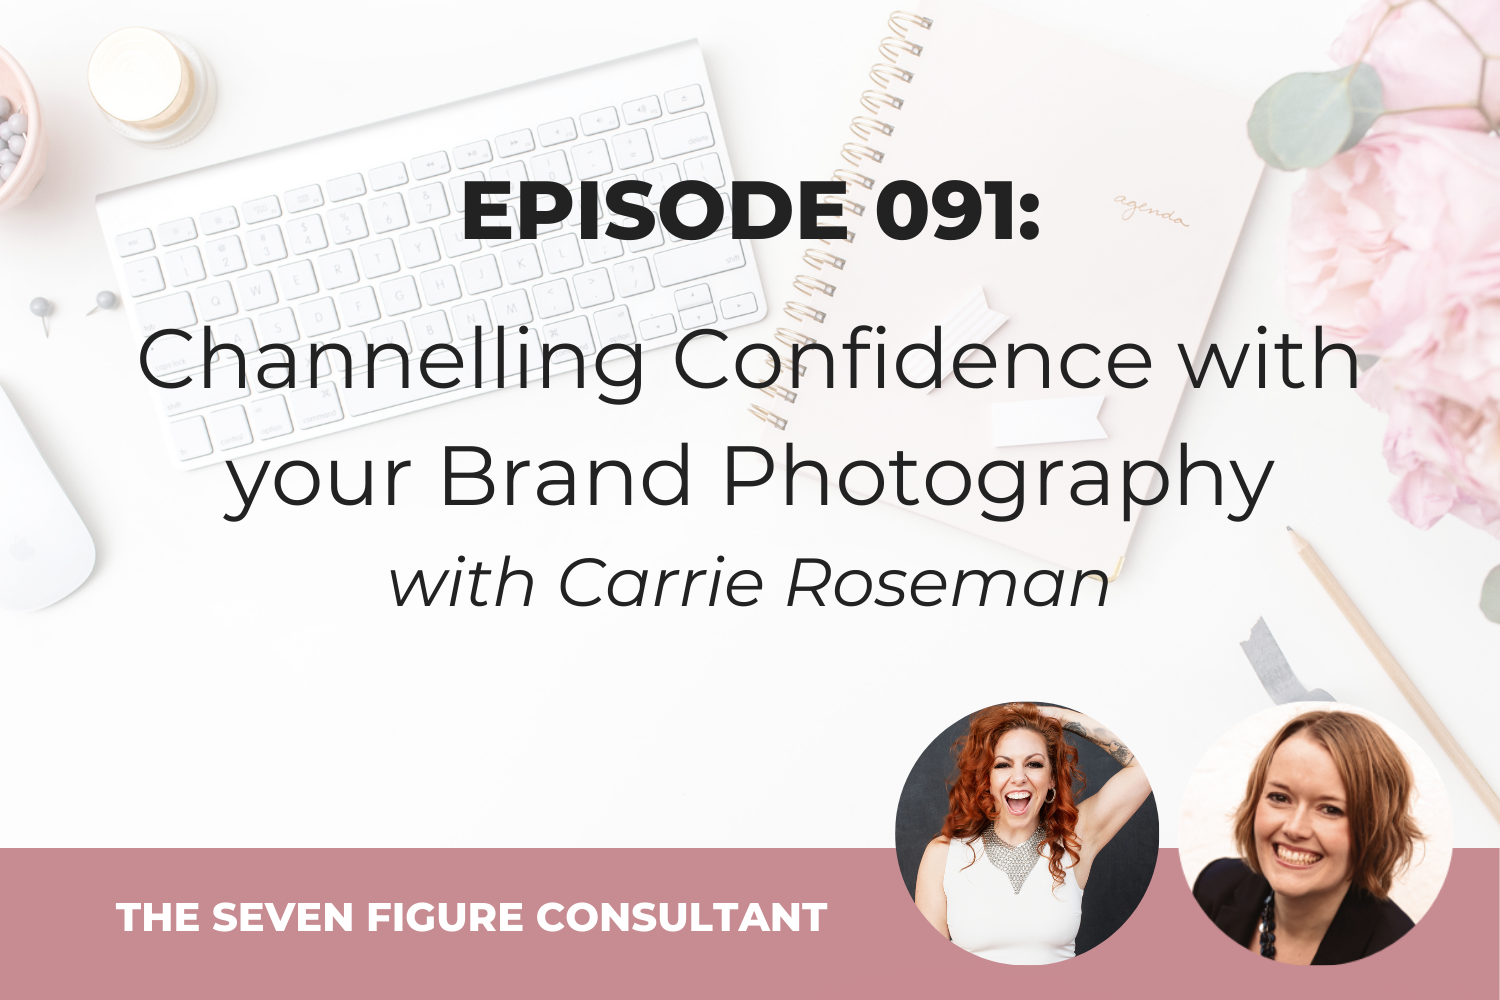 You are currently viewing Episode 091: Channelling Confidence with your Brand Photography, with Carrie Roseman